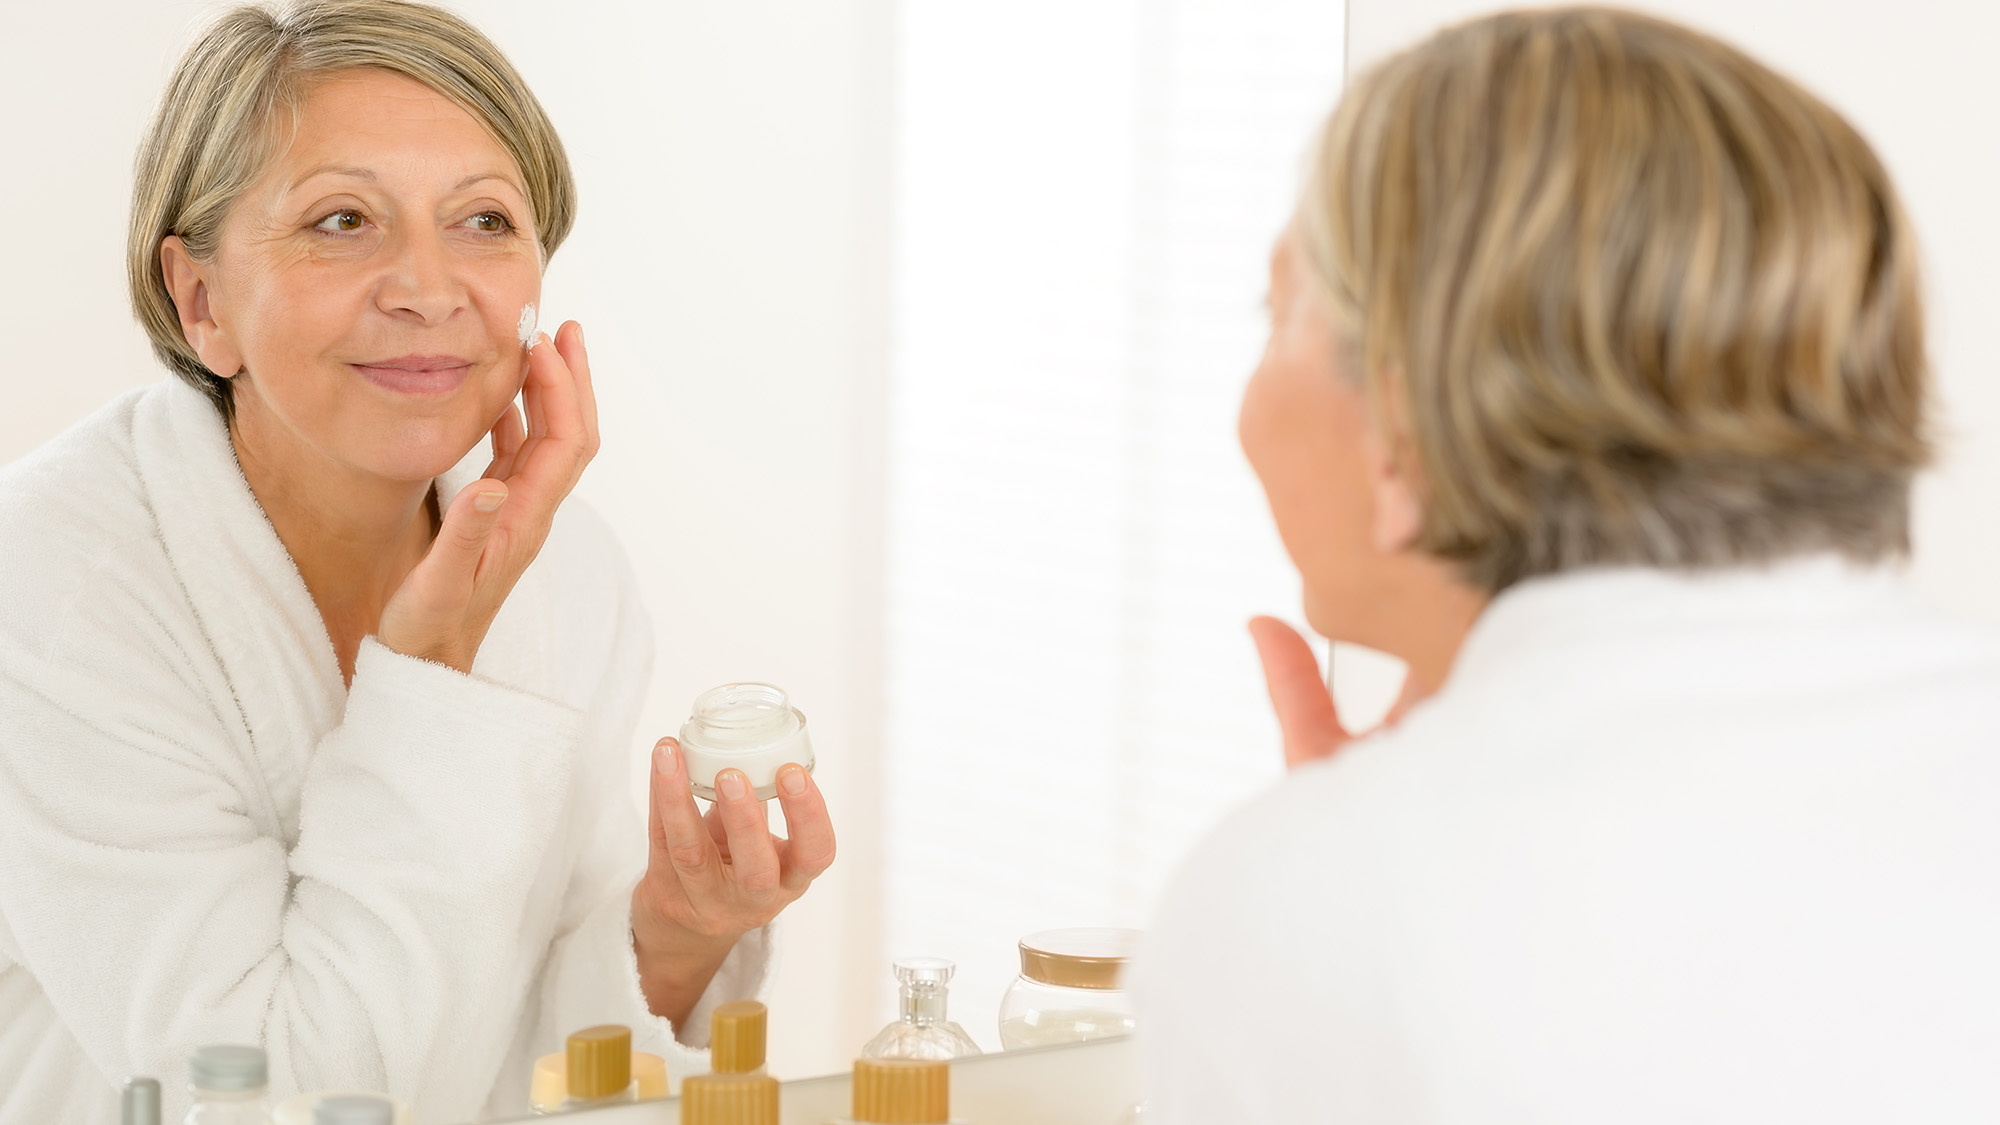 What exactly does our skin do?